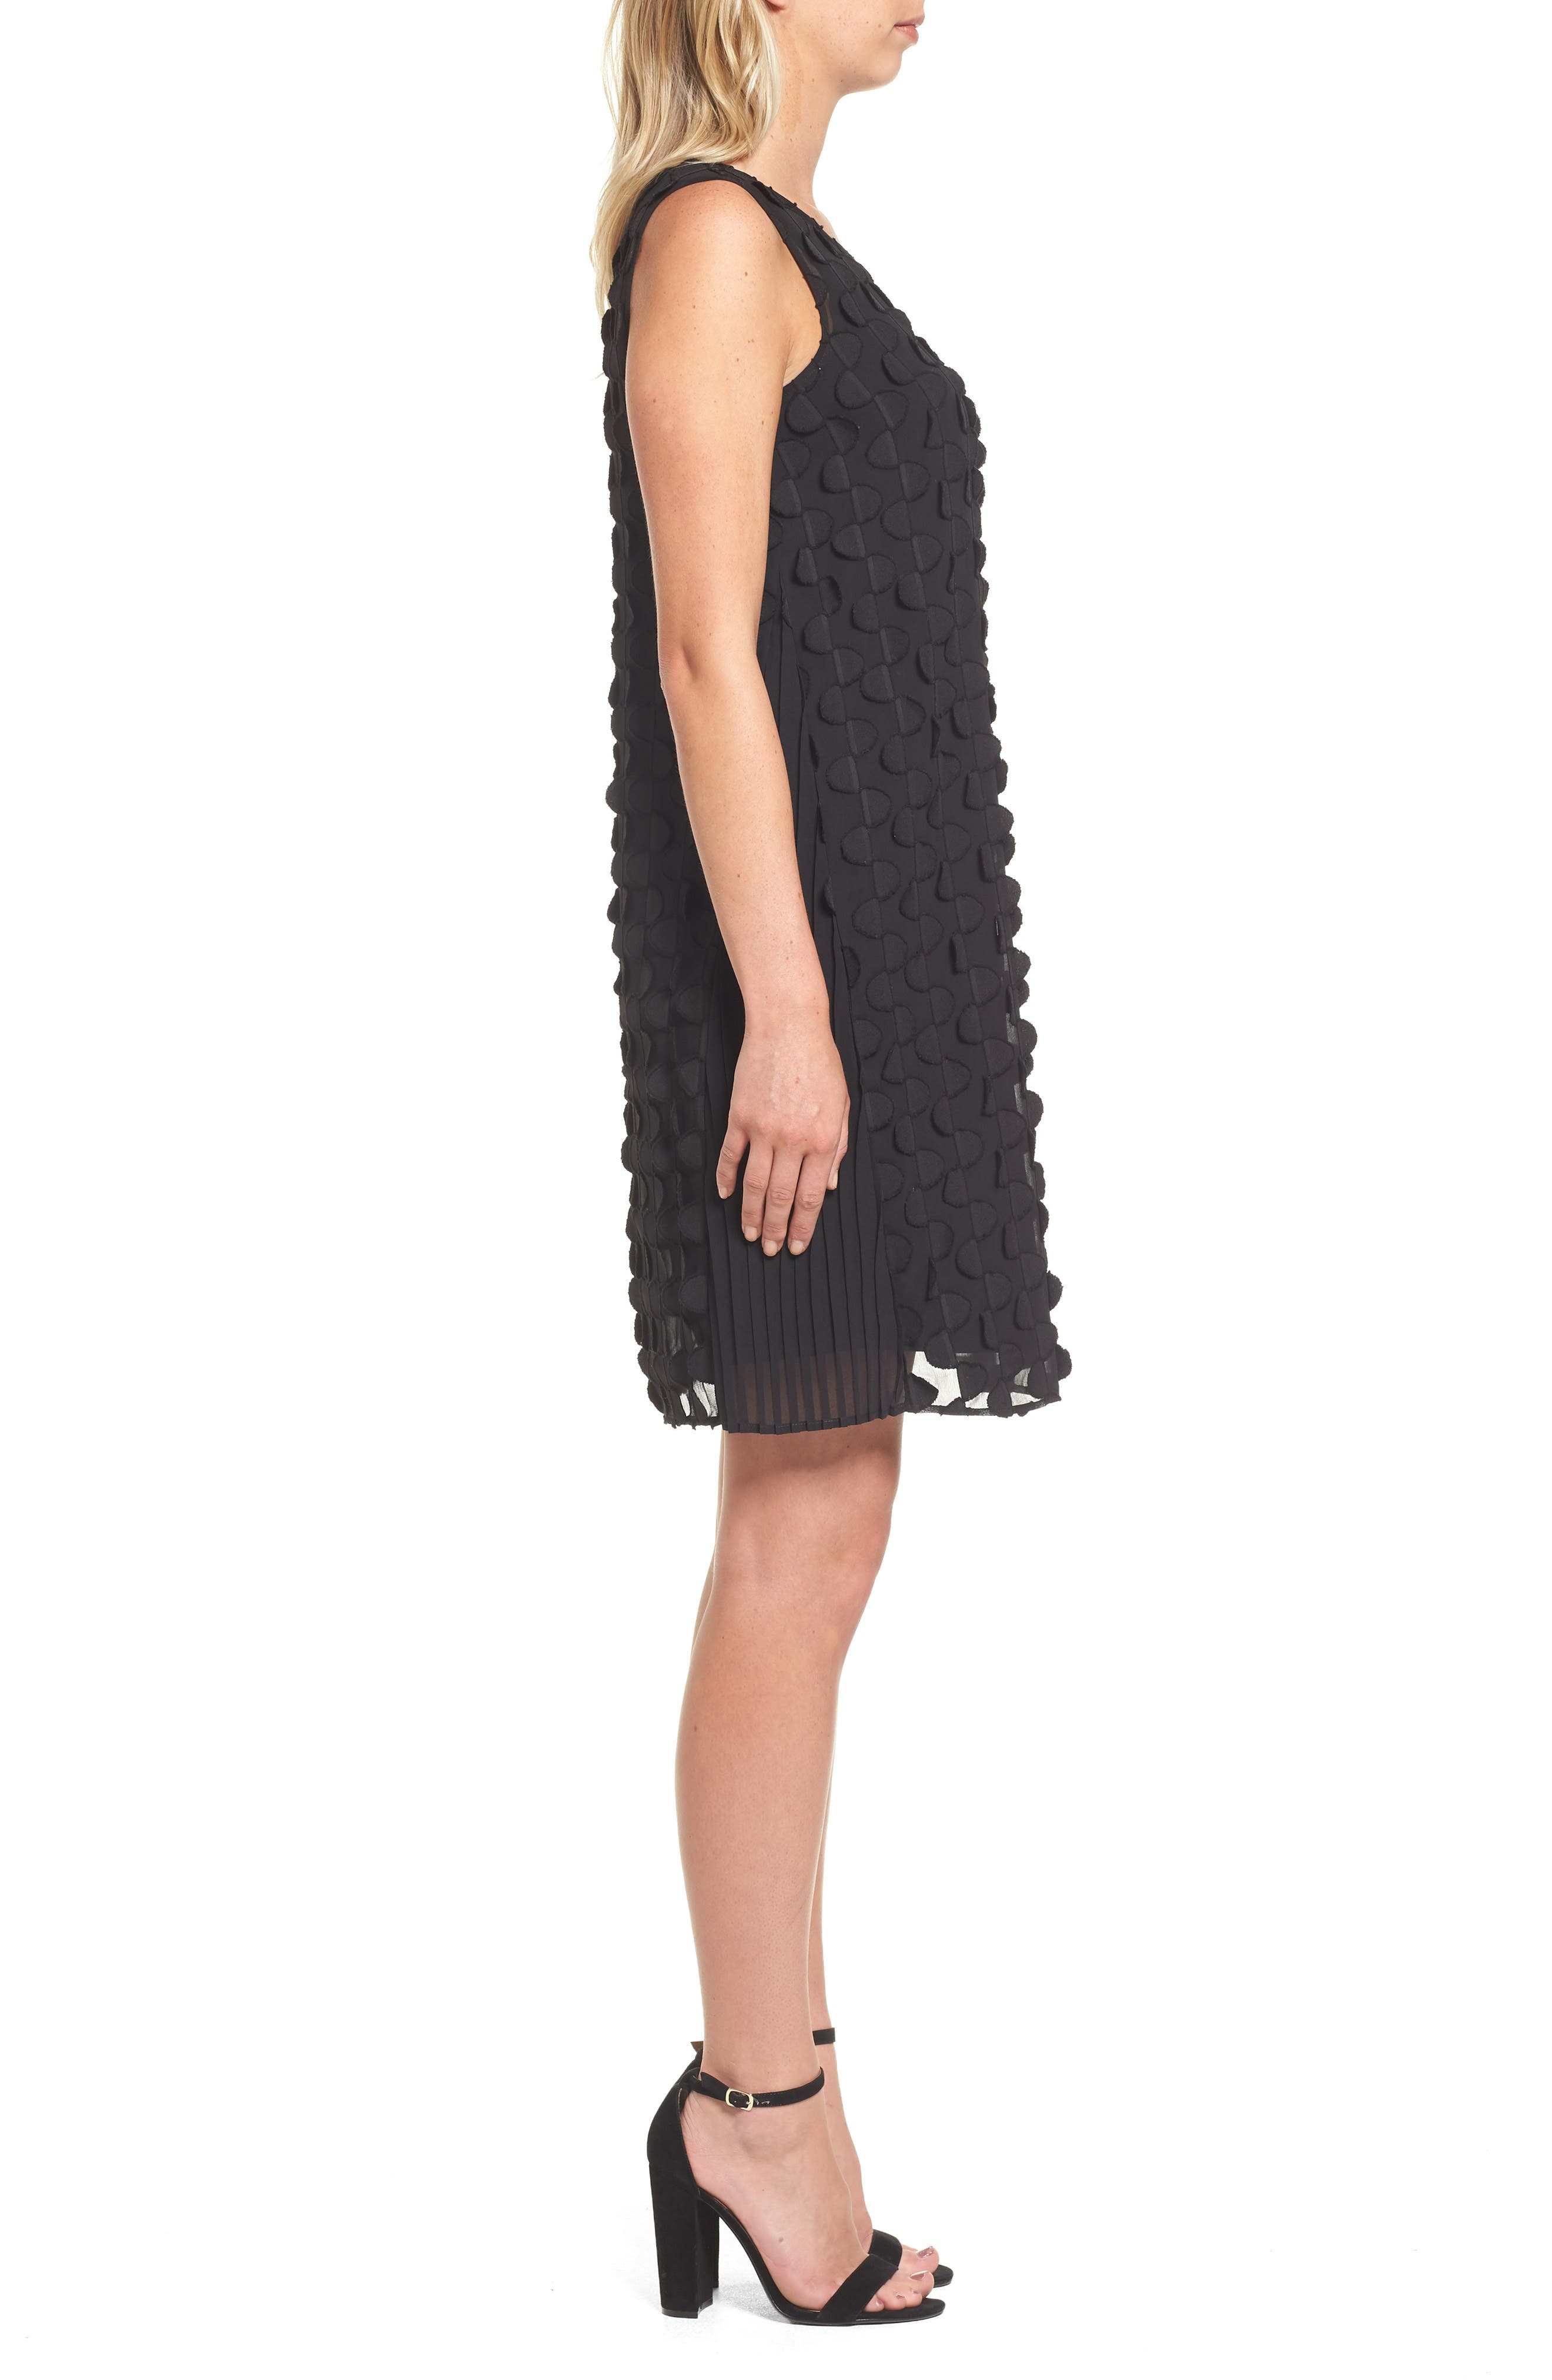 Nic + Zoe Showtime Shift Dress,                             Alternate thumbnail 3, color,                             004